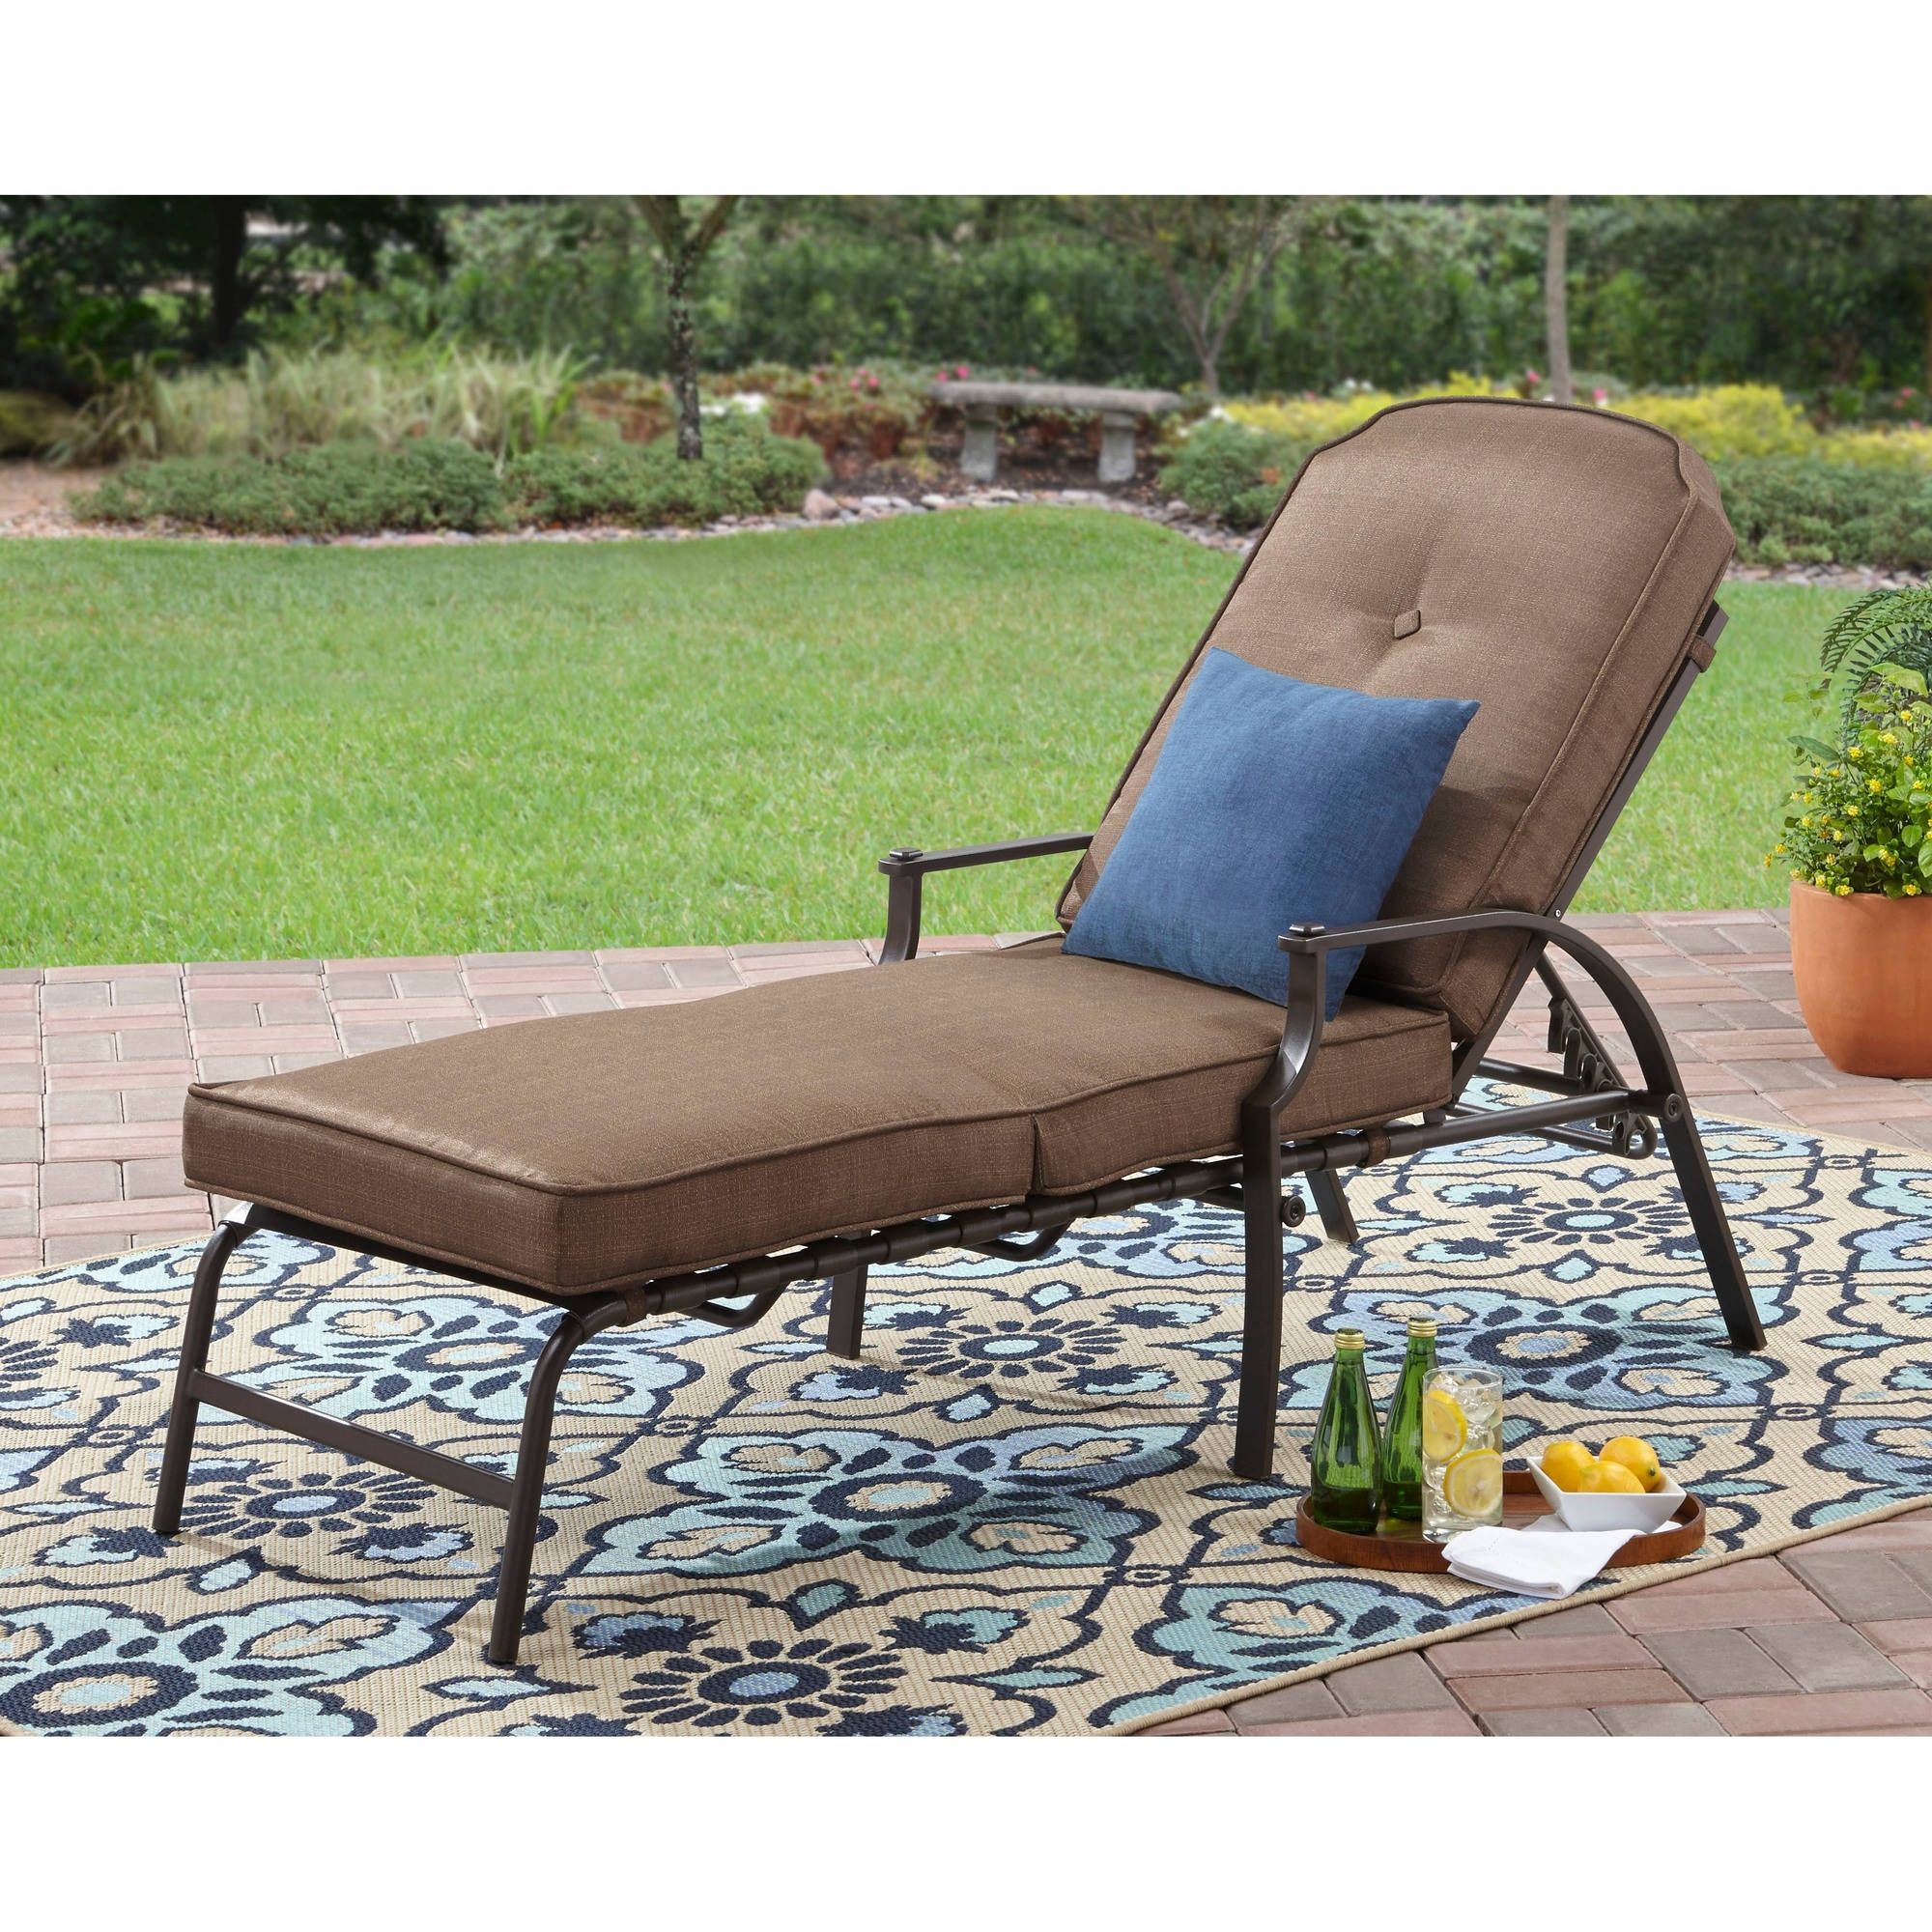 Vinyl Outdoor Chaise Lounge Chairs in Most Up-to-Date Mainstays Wentworth Chaise Lounge - Walmart